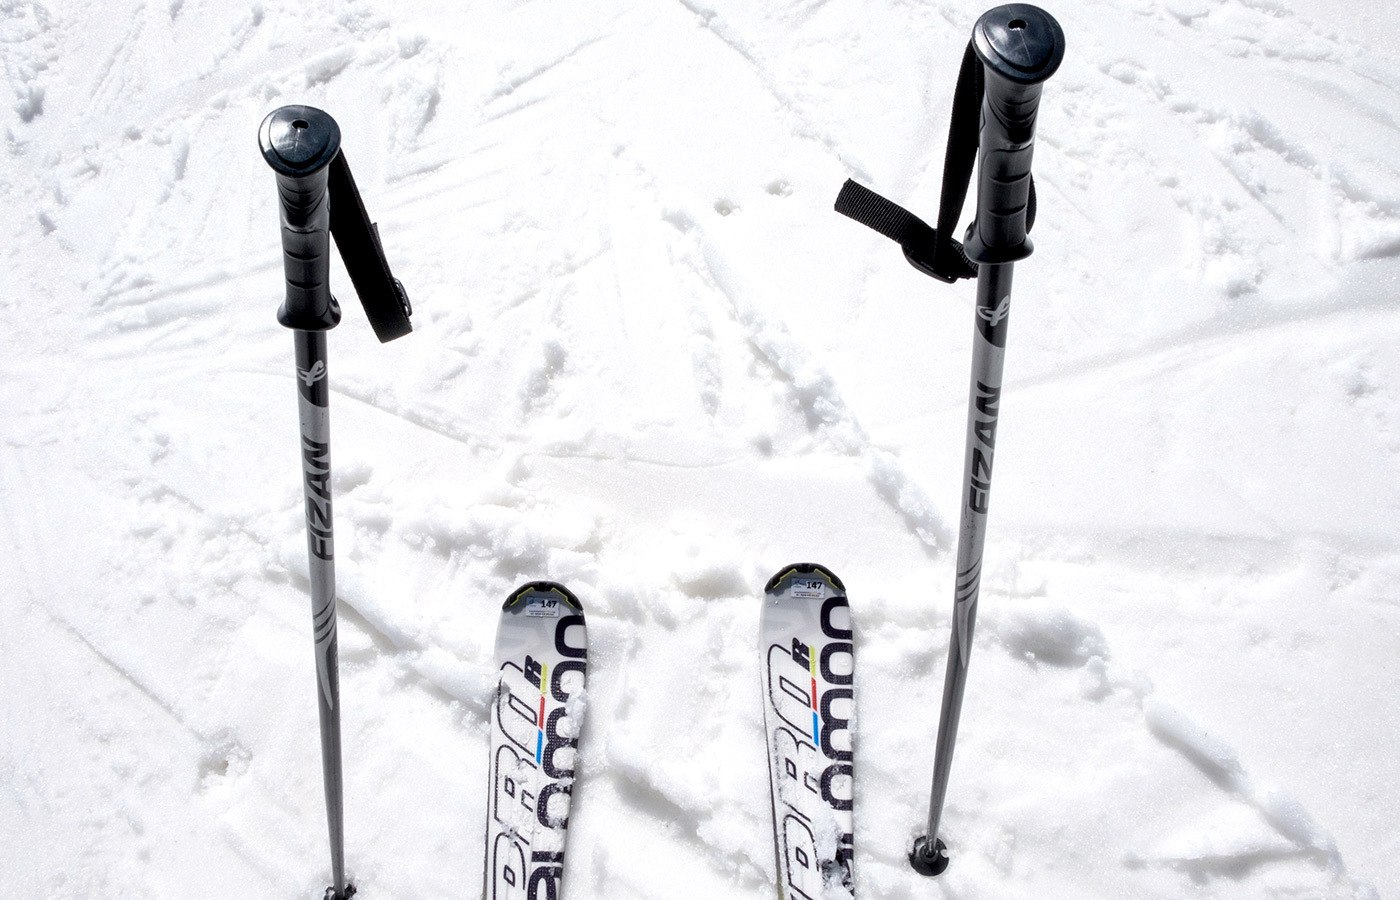 Skis and poles in the snow